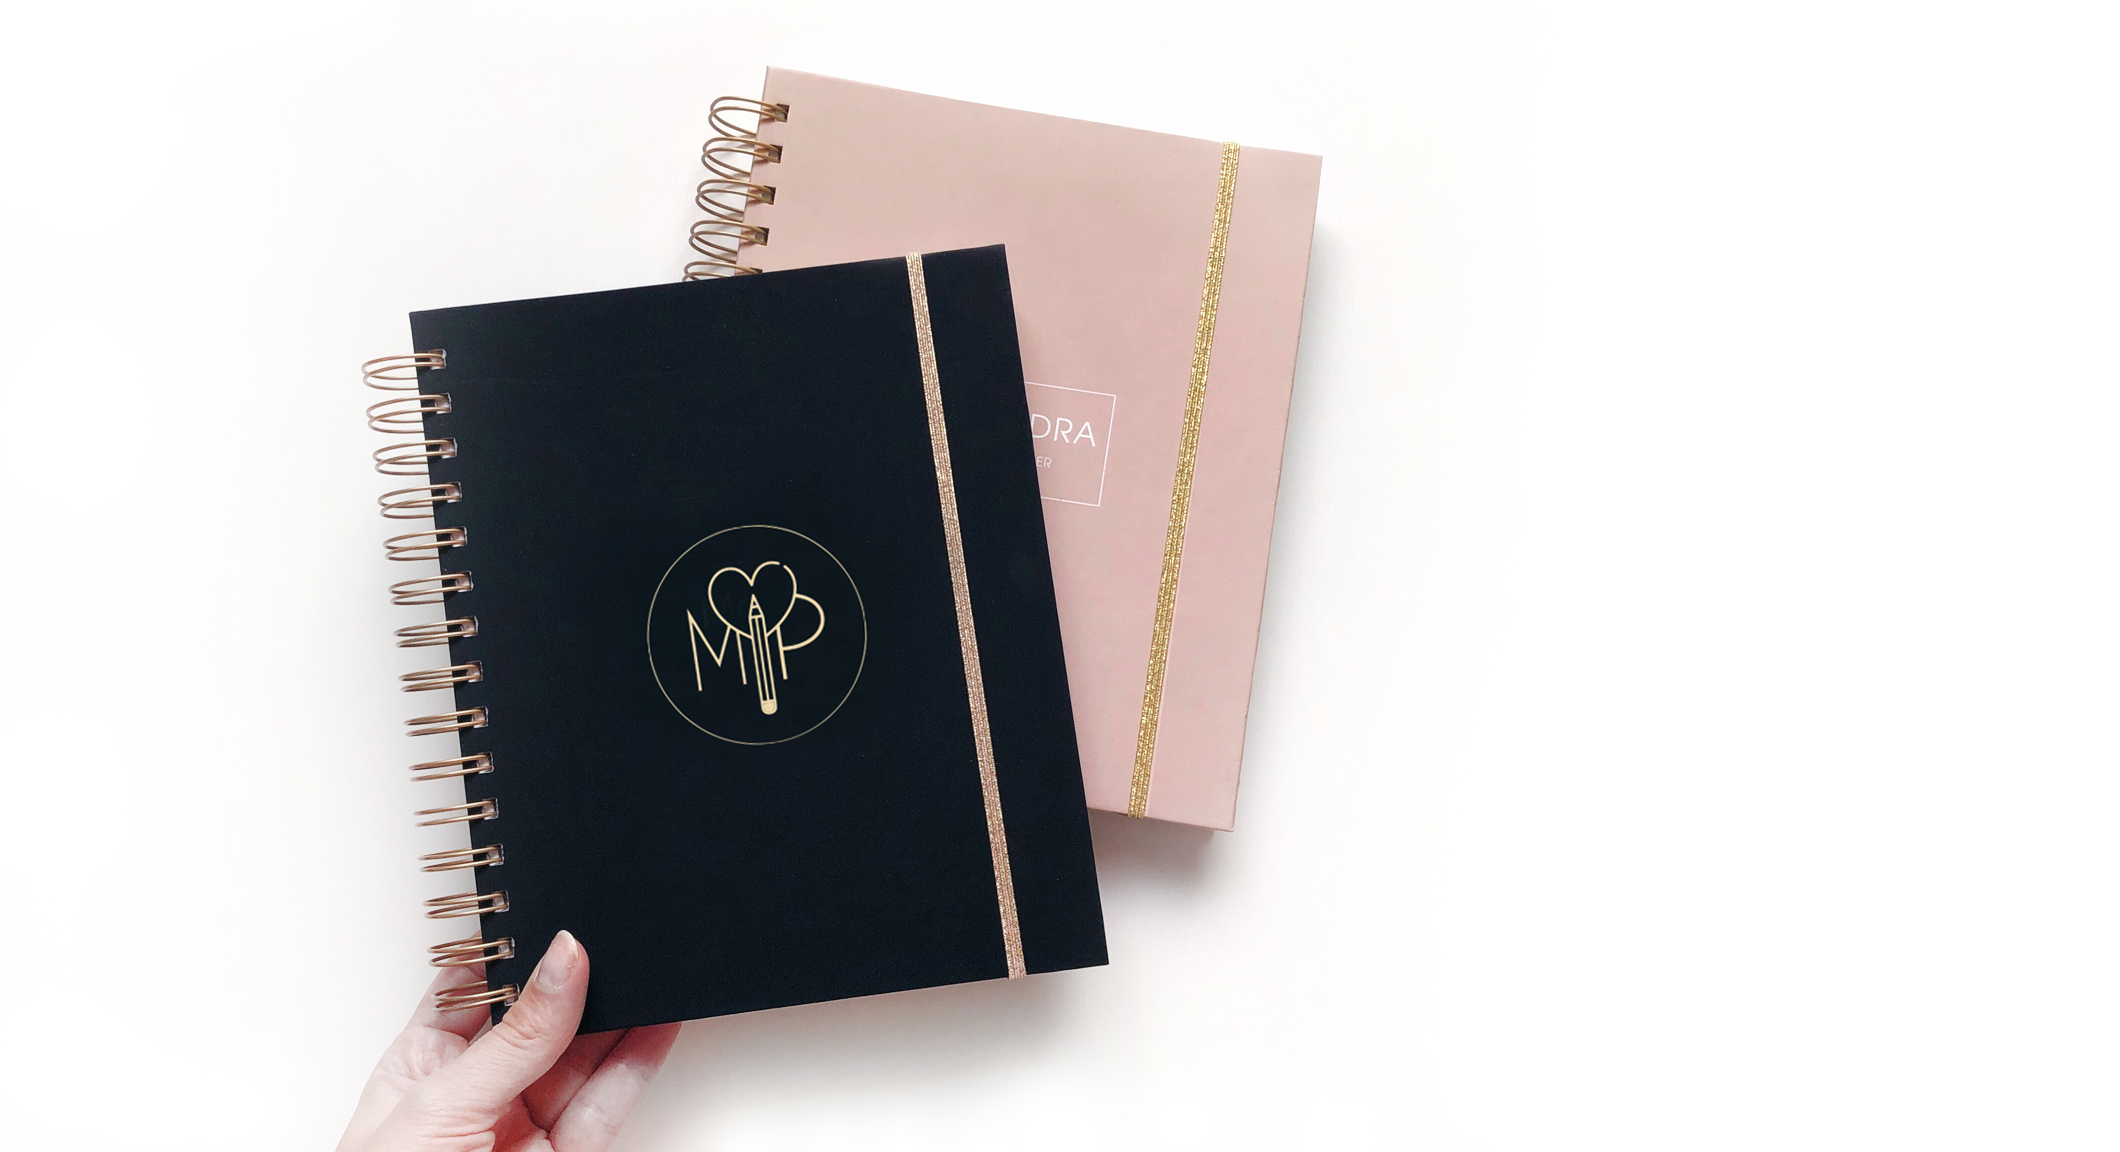 YOUR LOGO ON PLANNER - Do you run your own business? Are you a blogger? Or you want something really special? Ordering the cover with your own logo has never been easier!